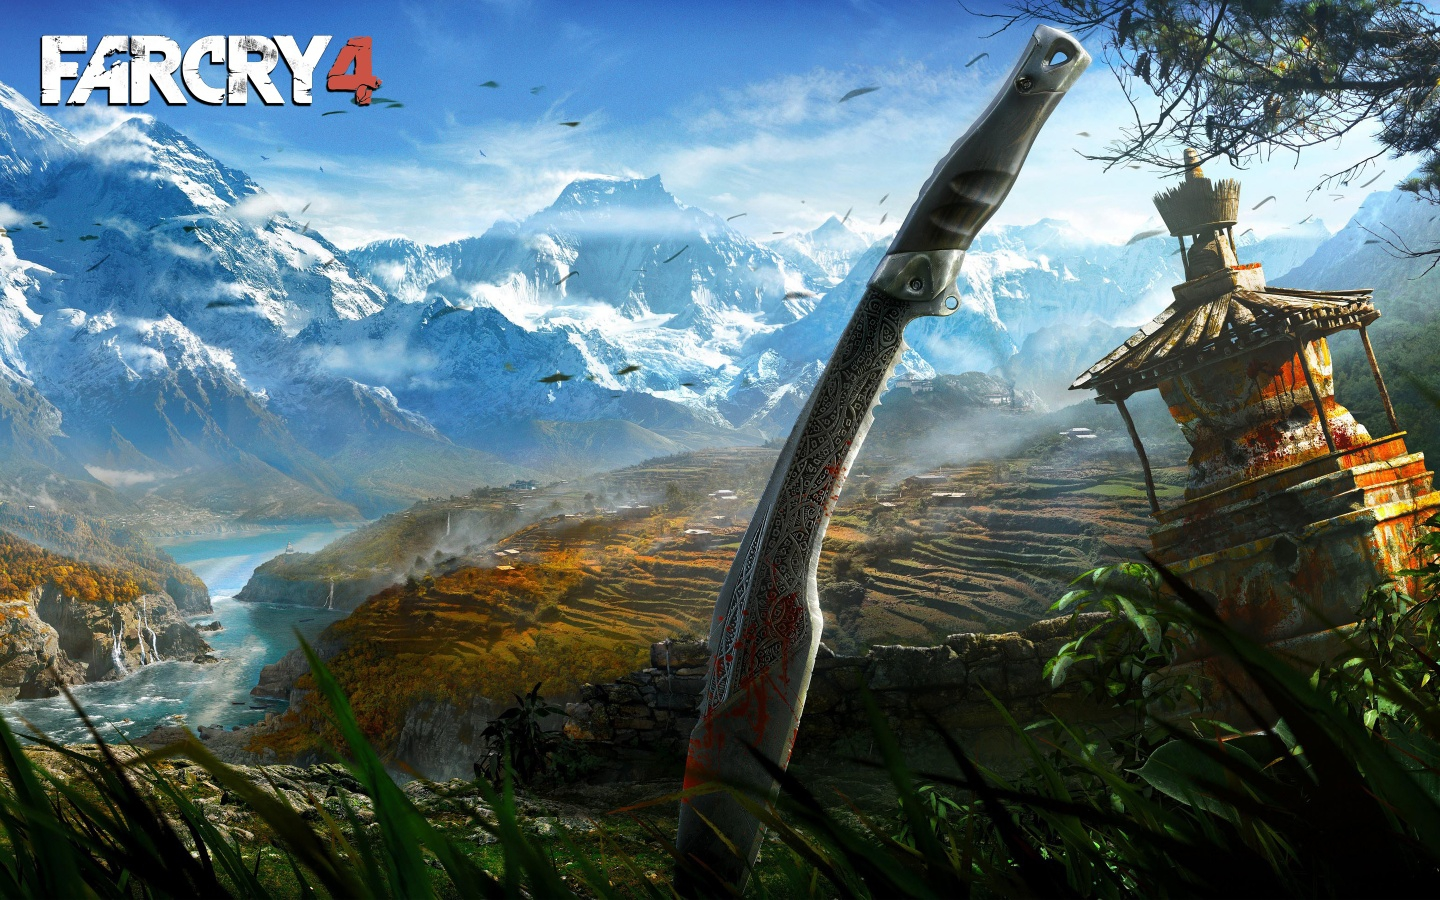 Far Cry 4 Trailer Highlights The Wonders And Dangers Of Kyrat To The Mantra Of I Will Survive Neoseeker